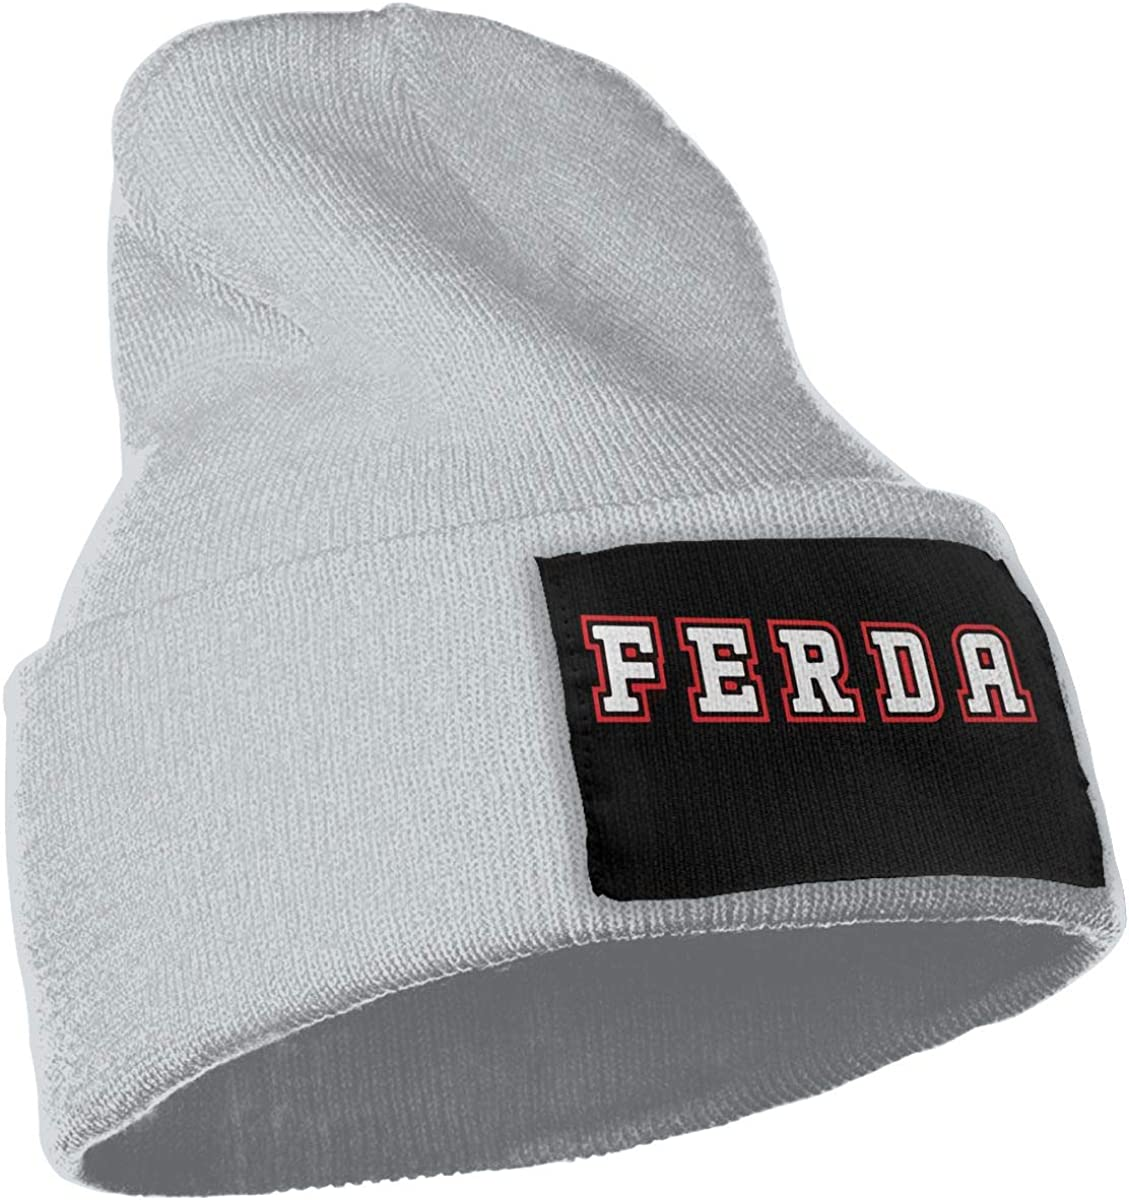 Peng Peng Ferda Letterkenny Beanie Cap Skull Cap Men Women Winter Warm Knitting Hats